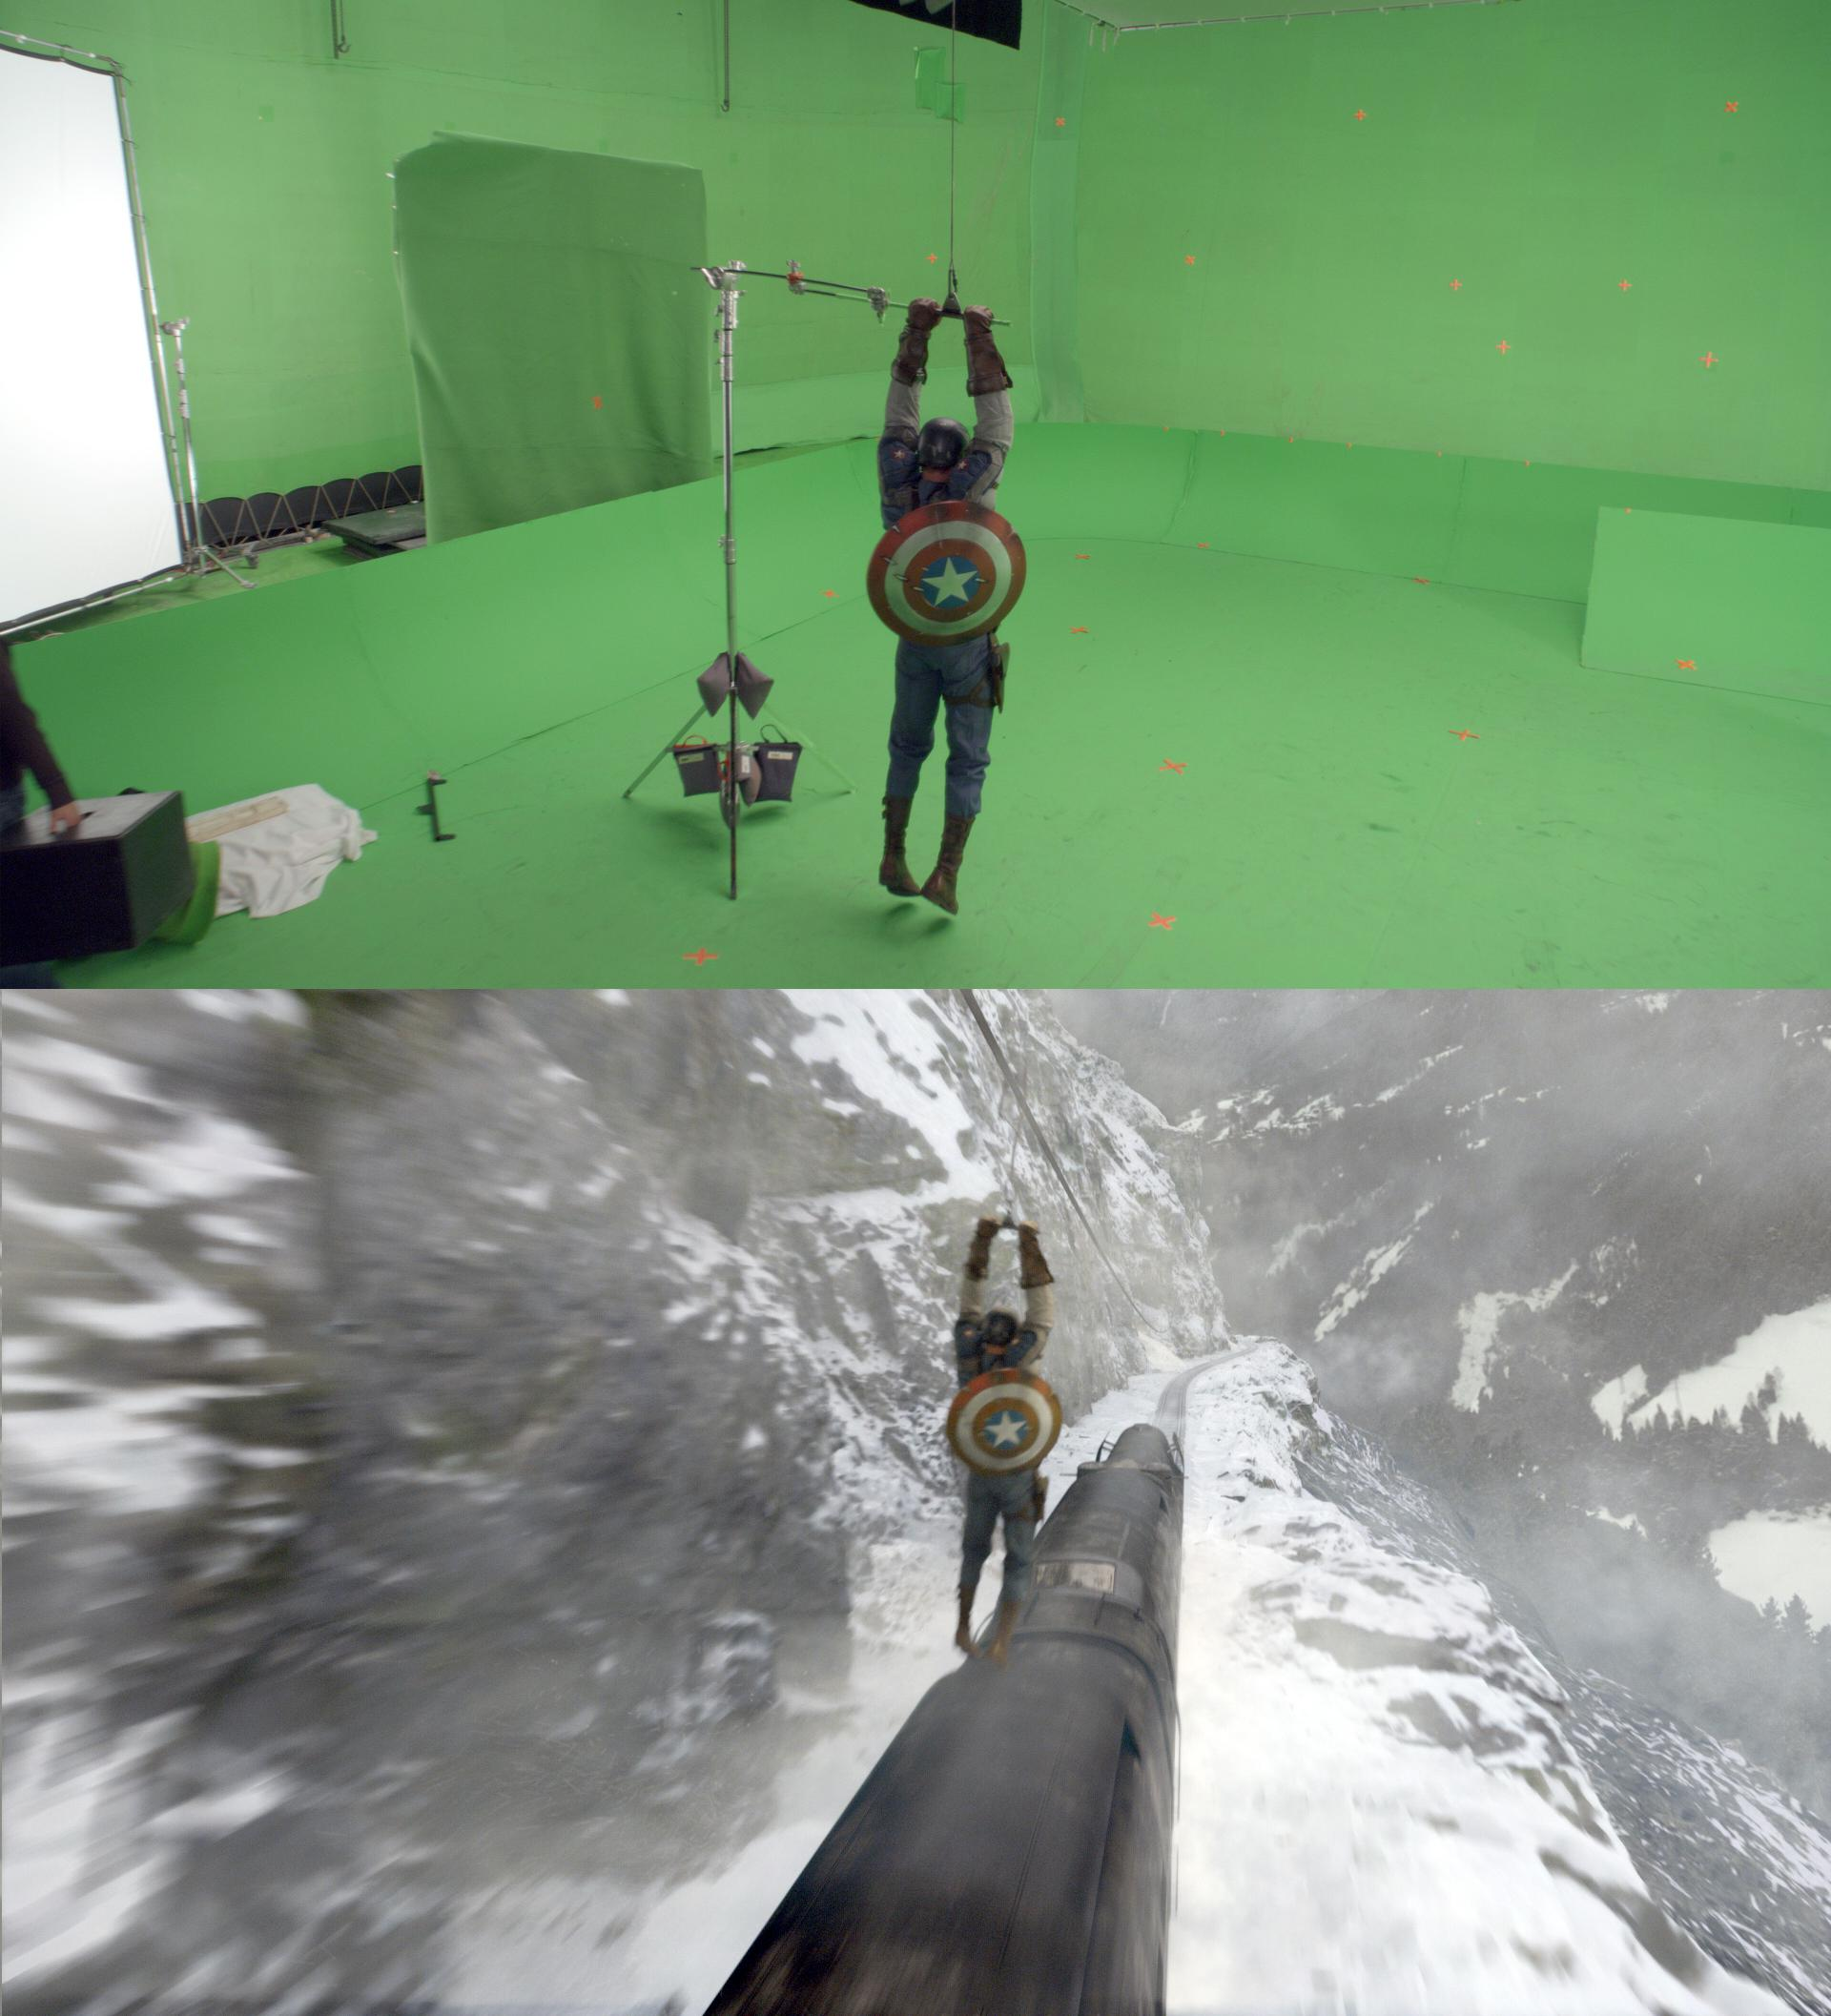 20-before-and-after-comparisons-of-movie-visual-effects-35